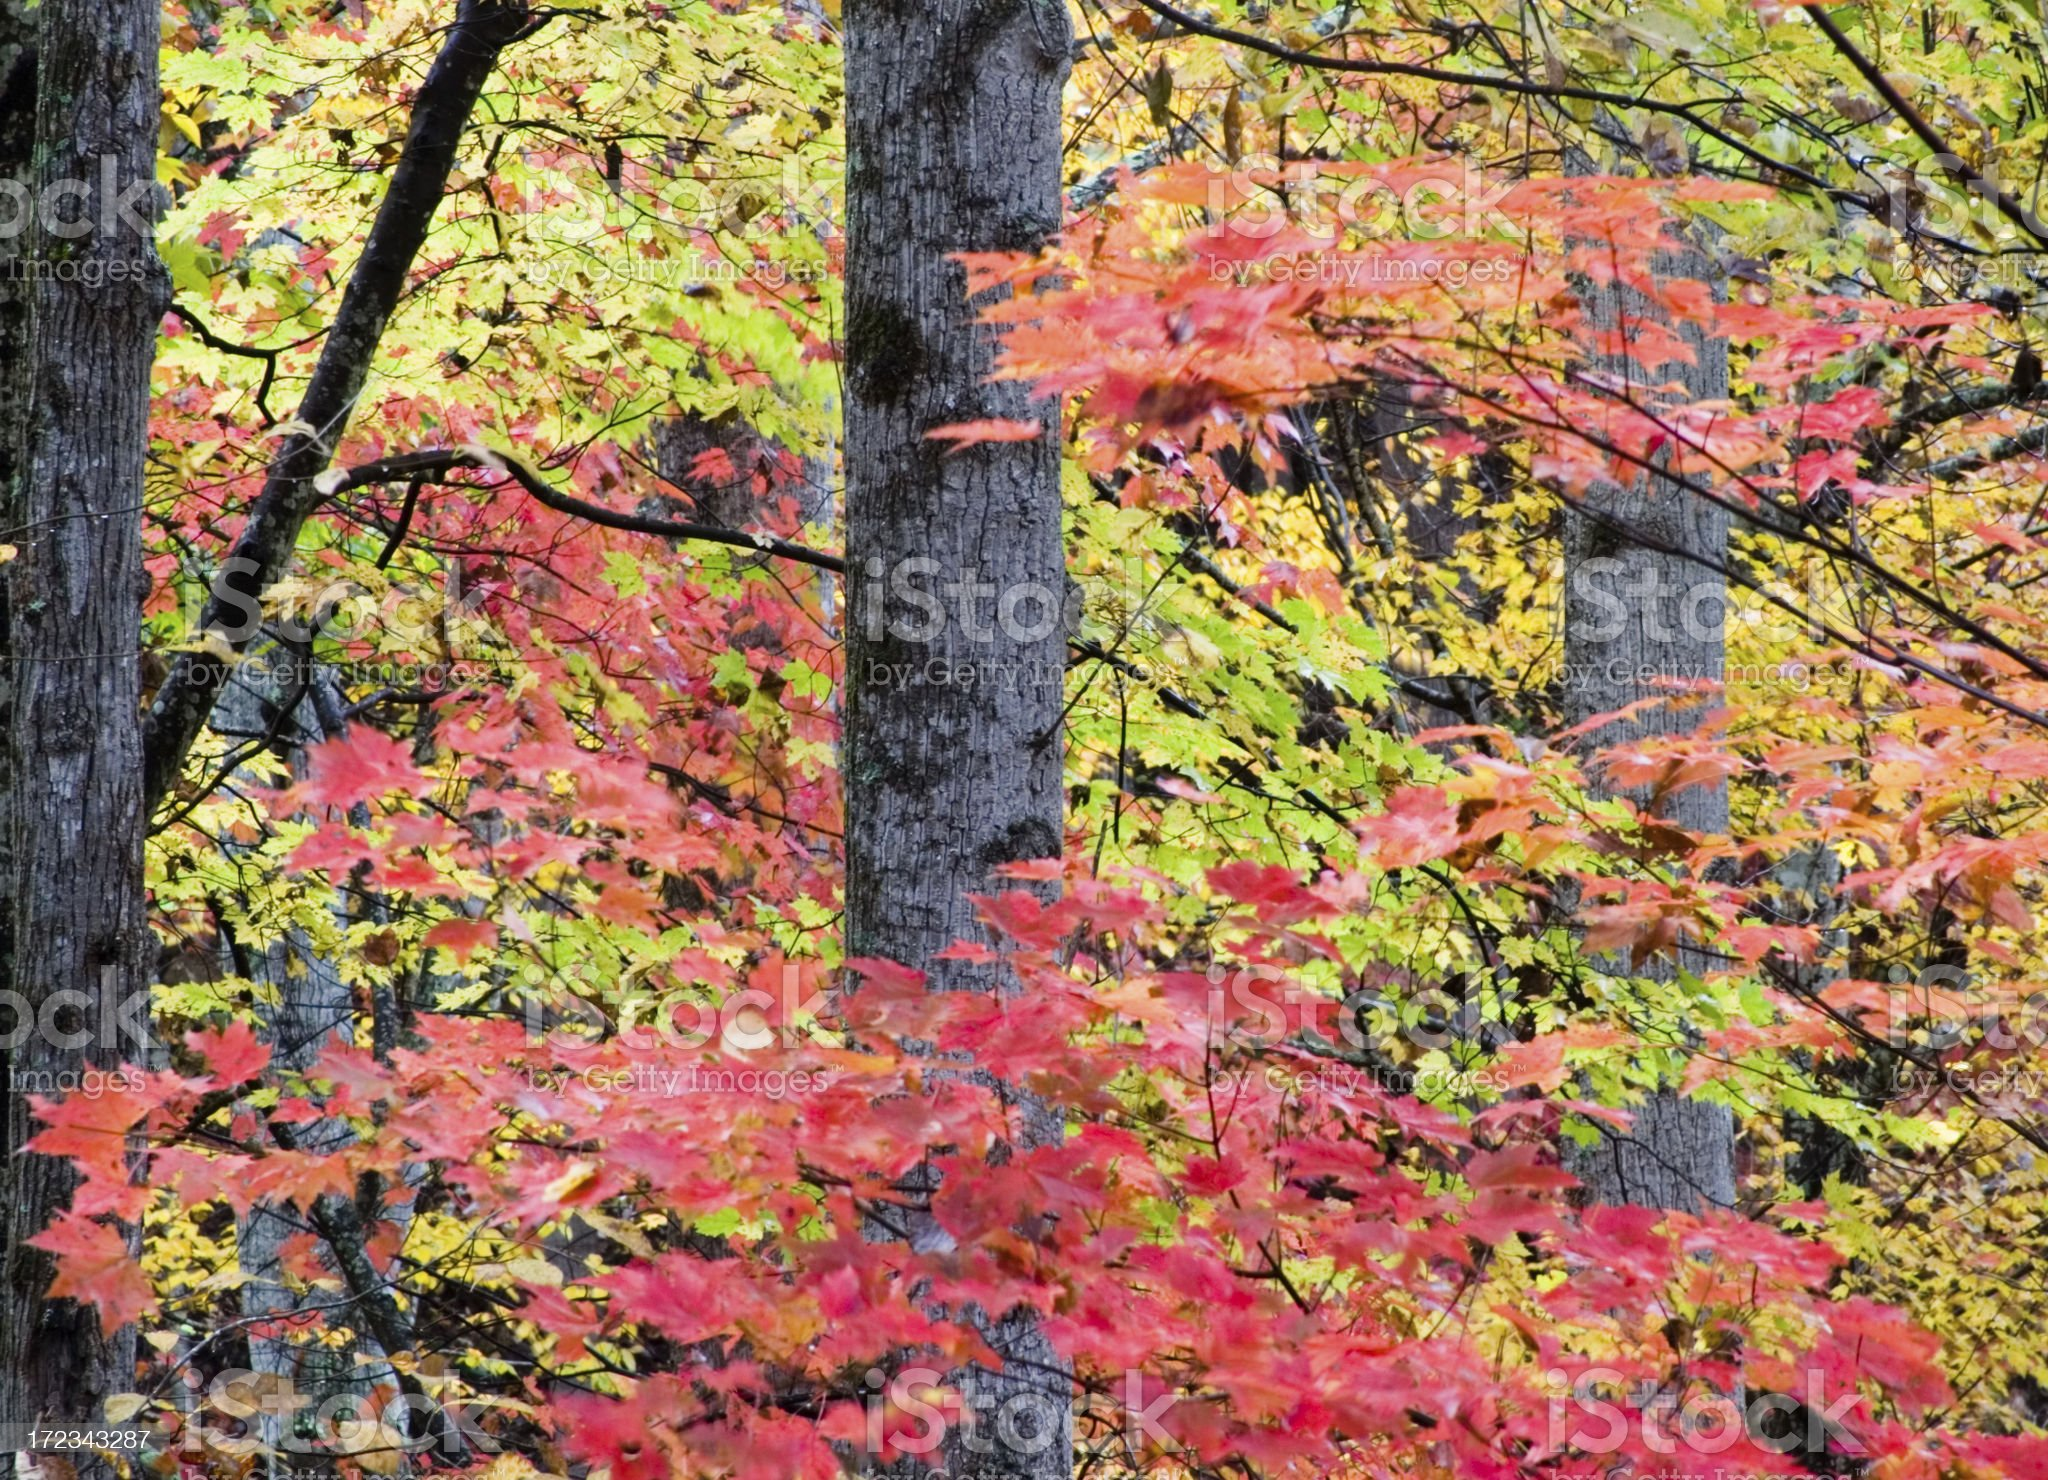 The Colors of Autumn royalty-free stock photo